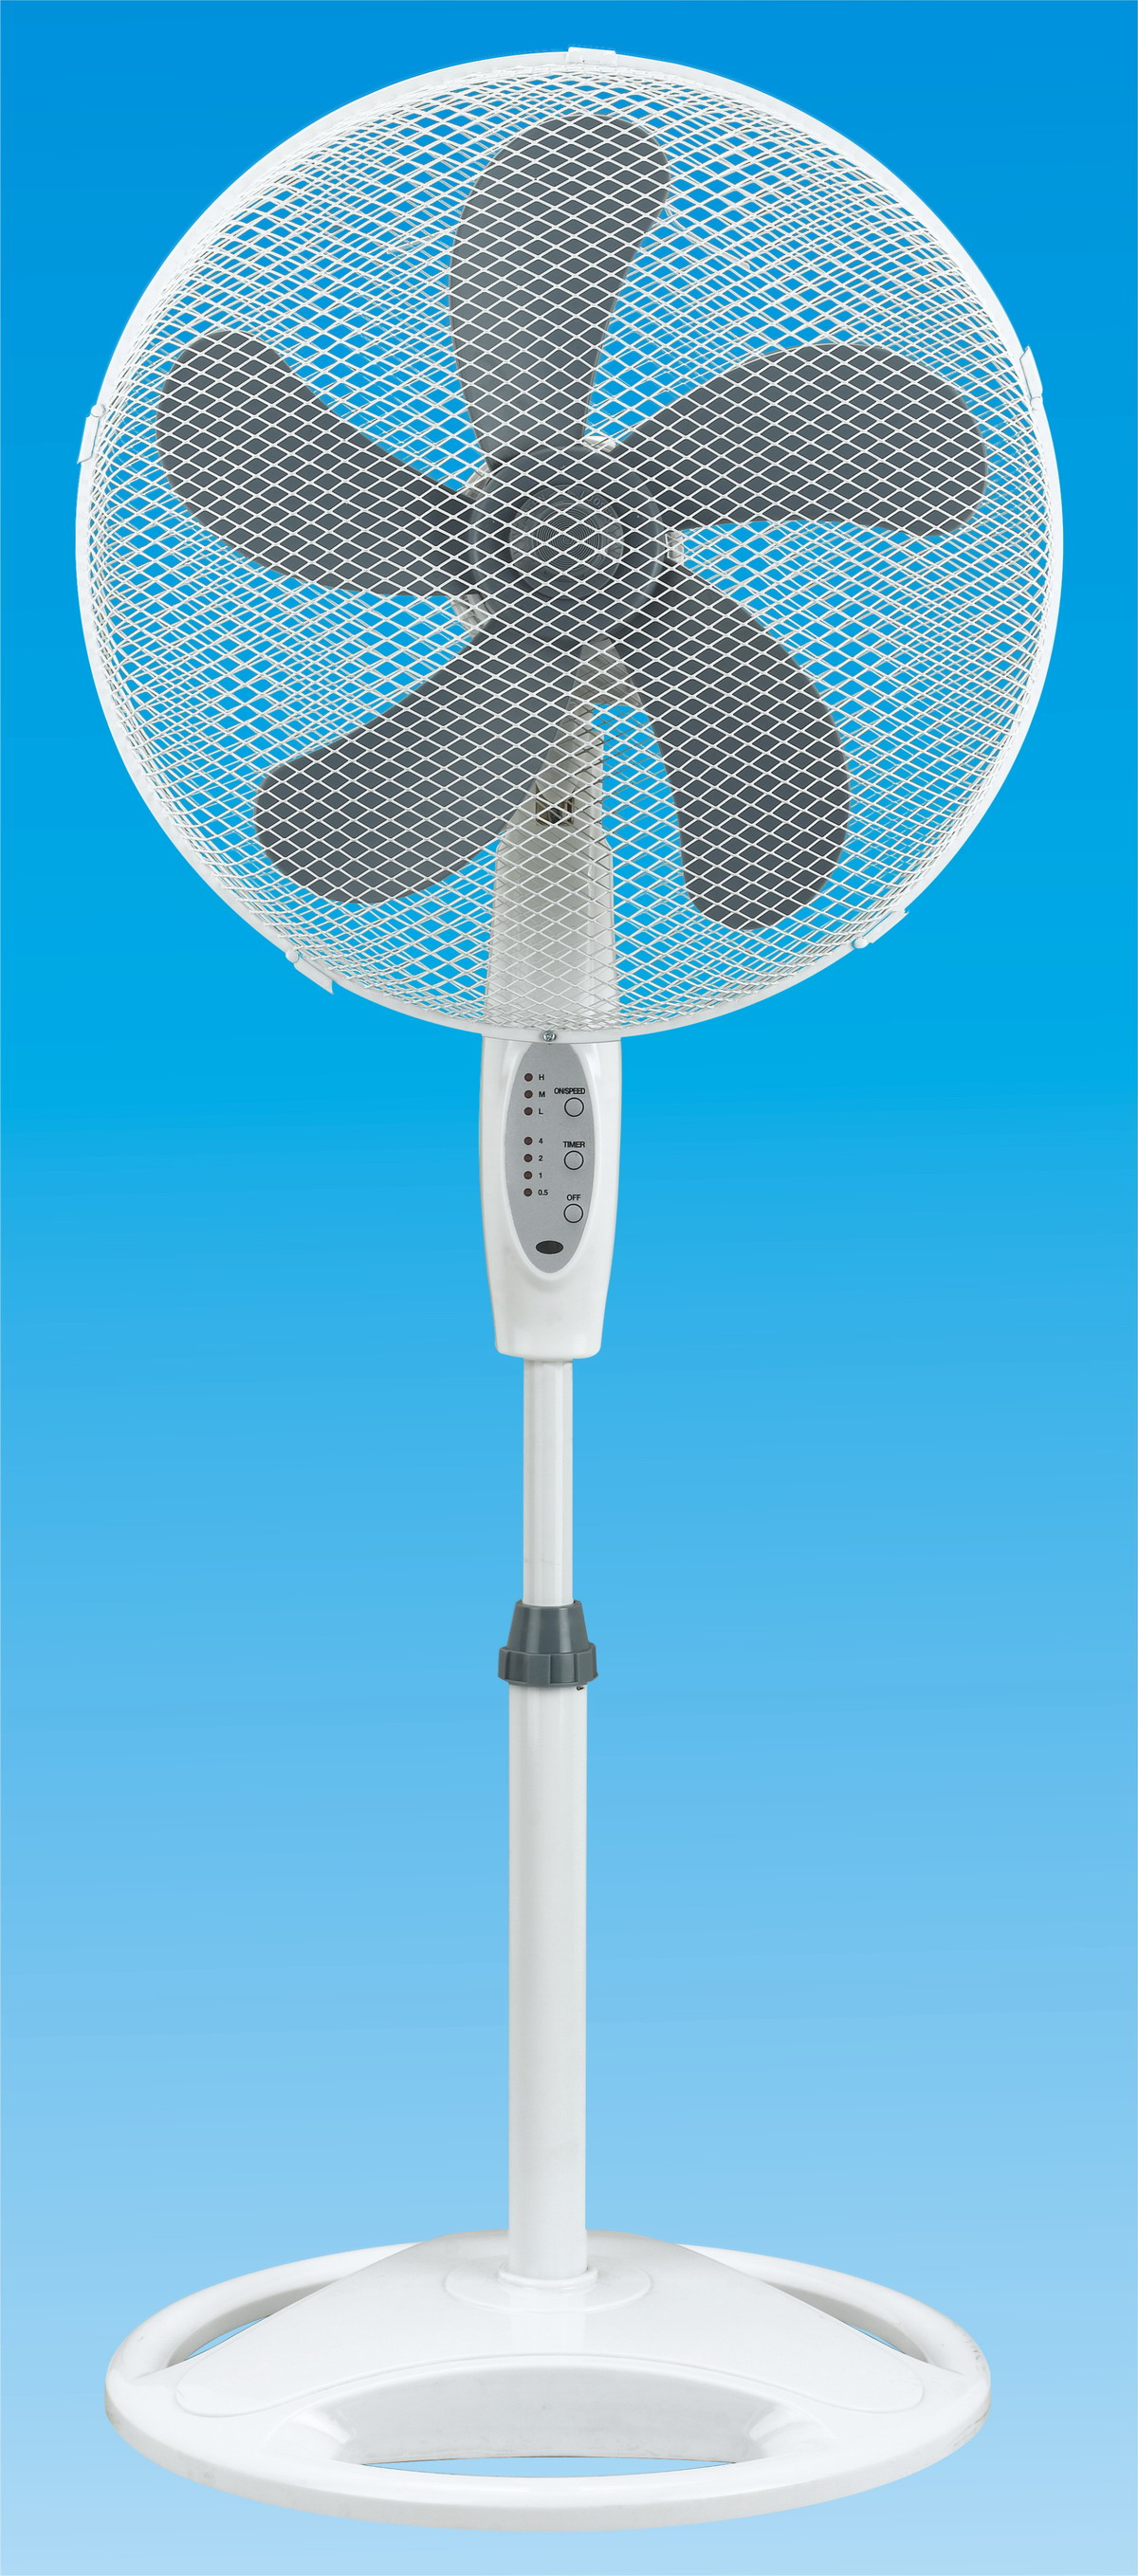 Optimus F1670s Fan 16inch Oscillating Stand Fan